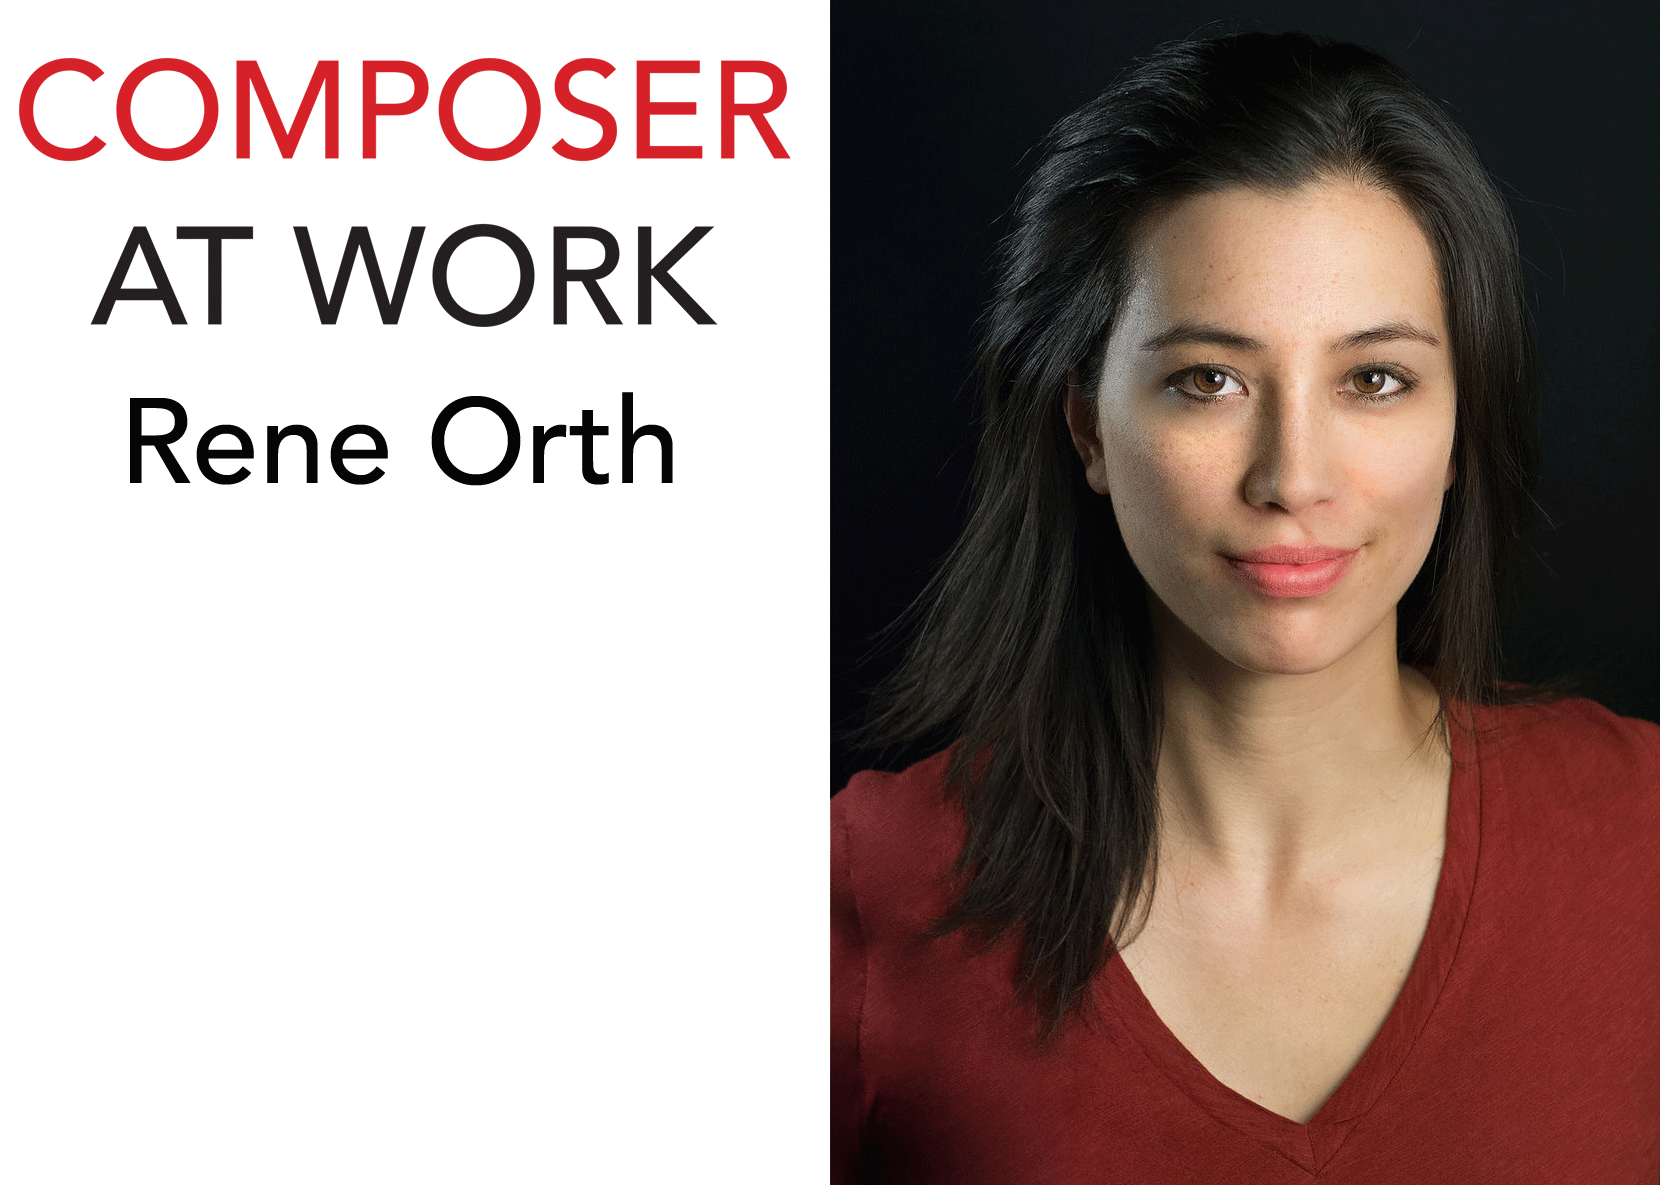 Rene Orth Composer At Work